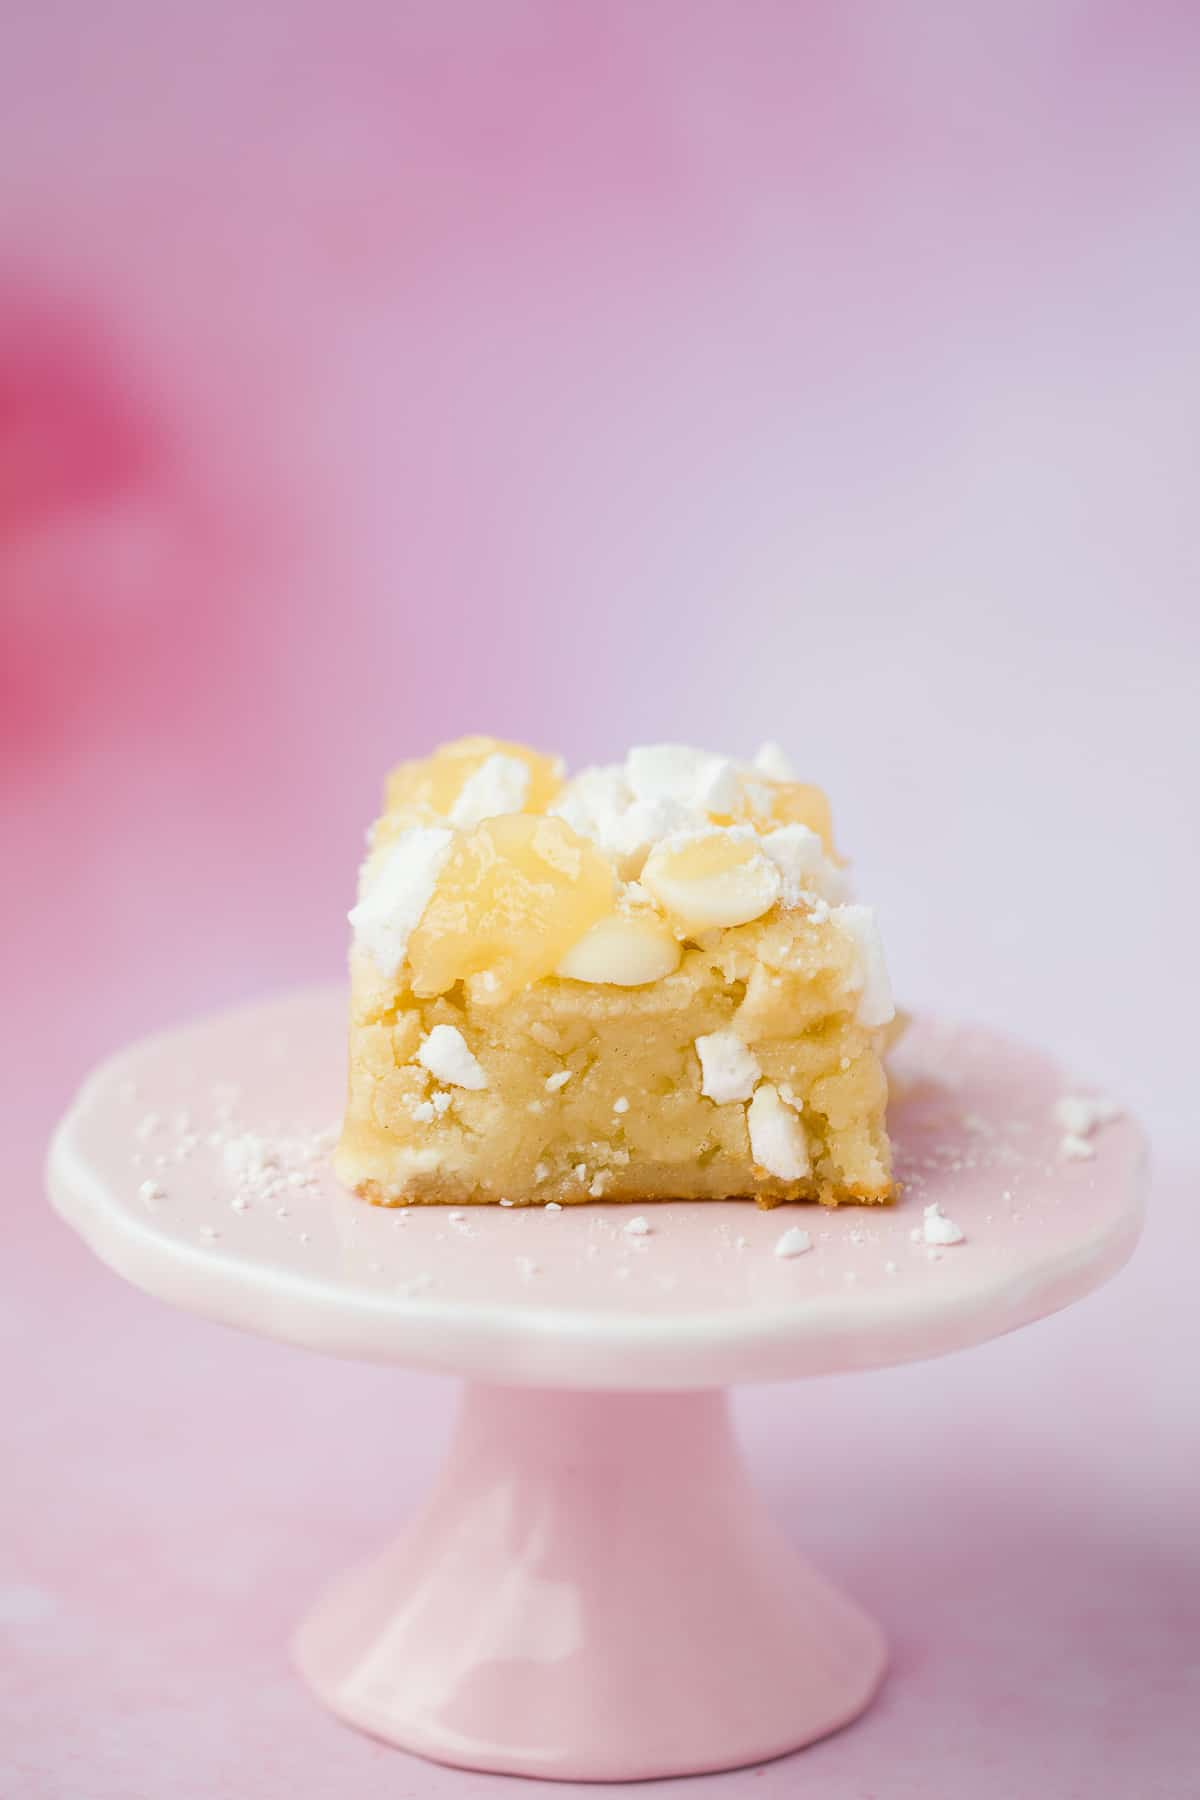 A lemon flavour blondie on a small pink cake stand.